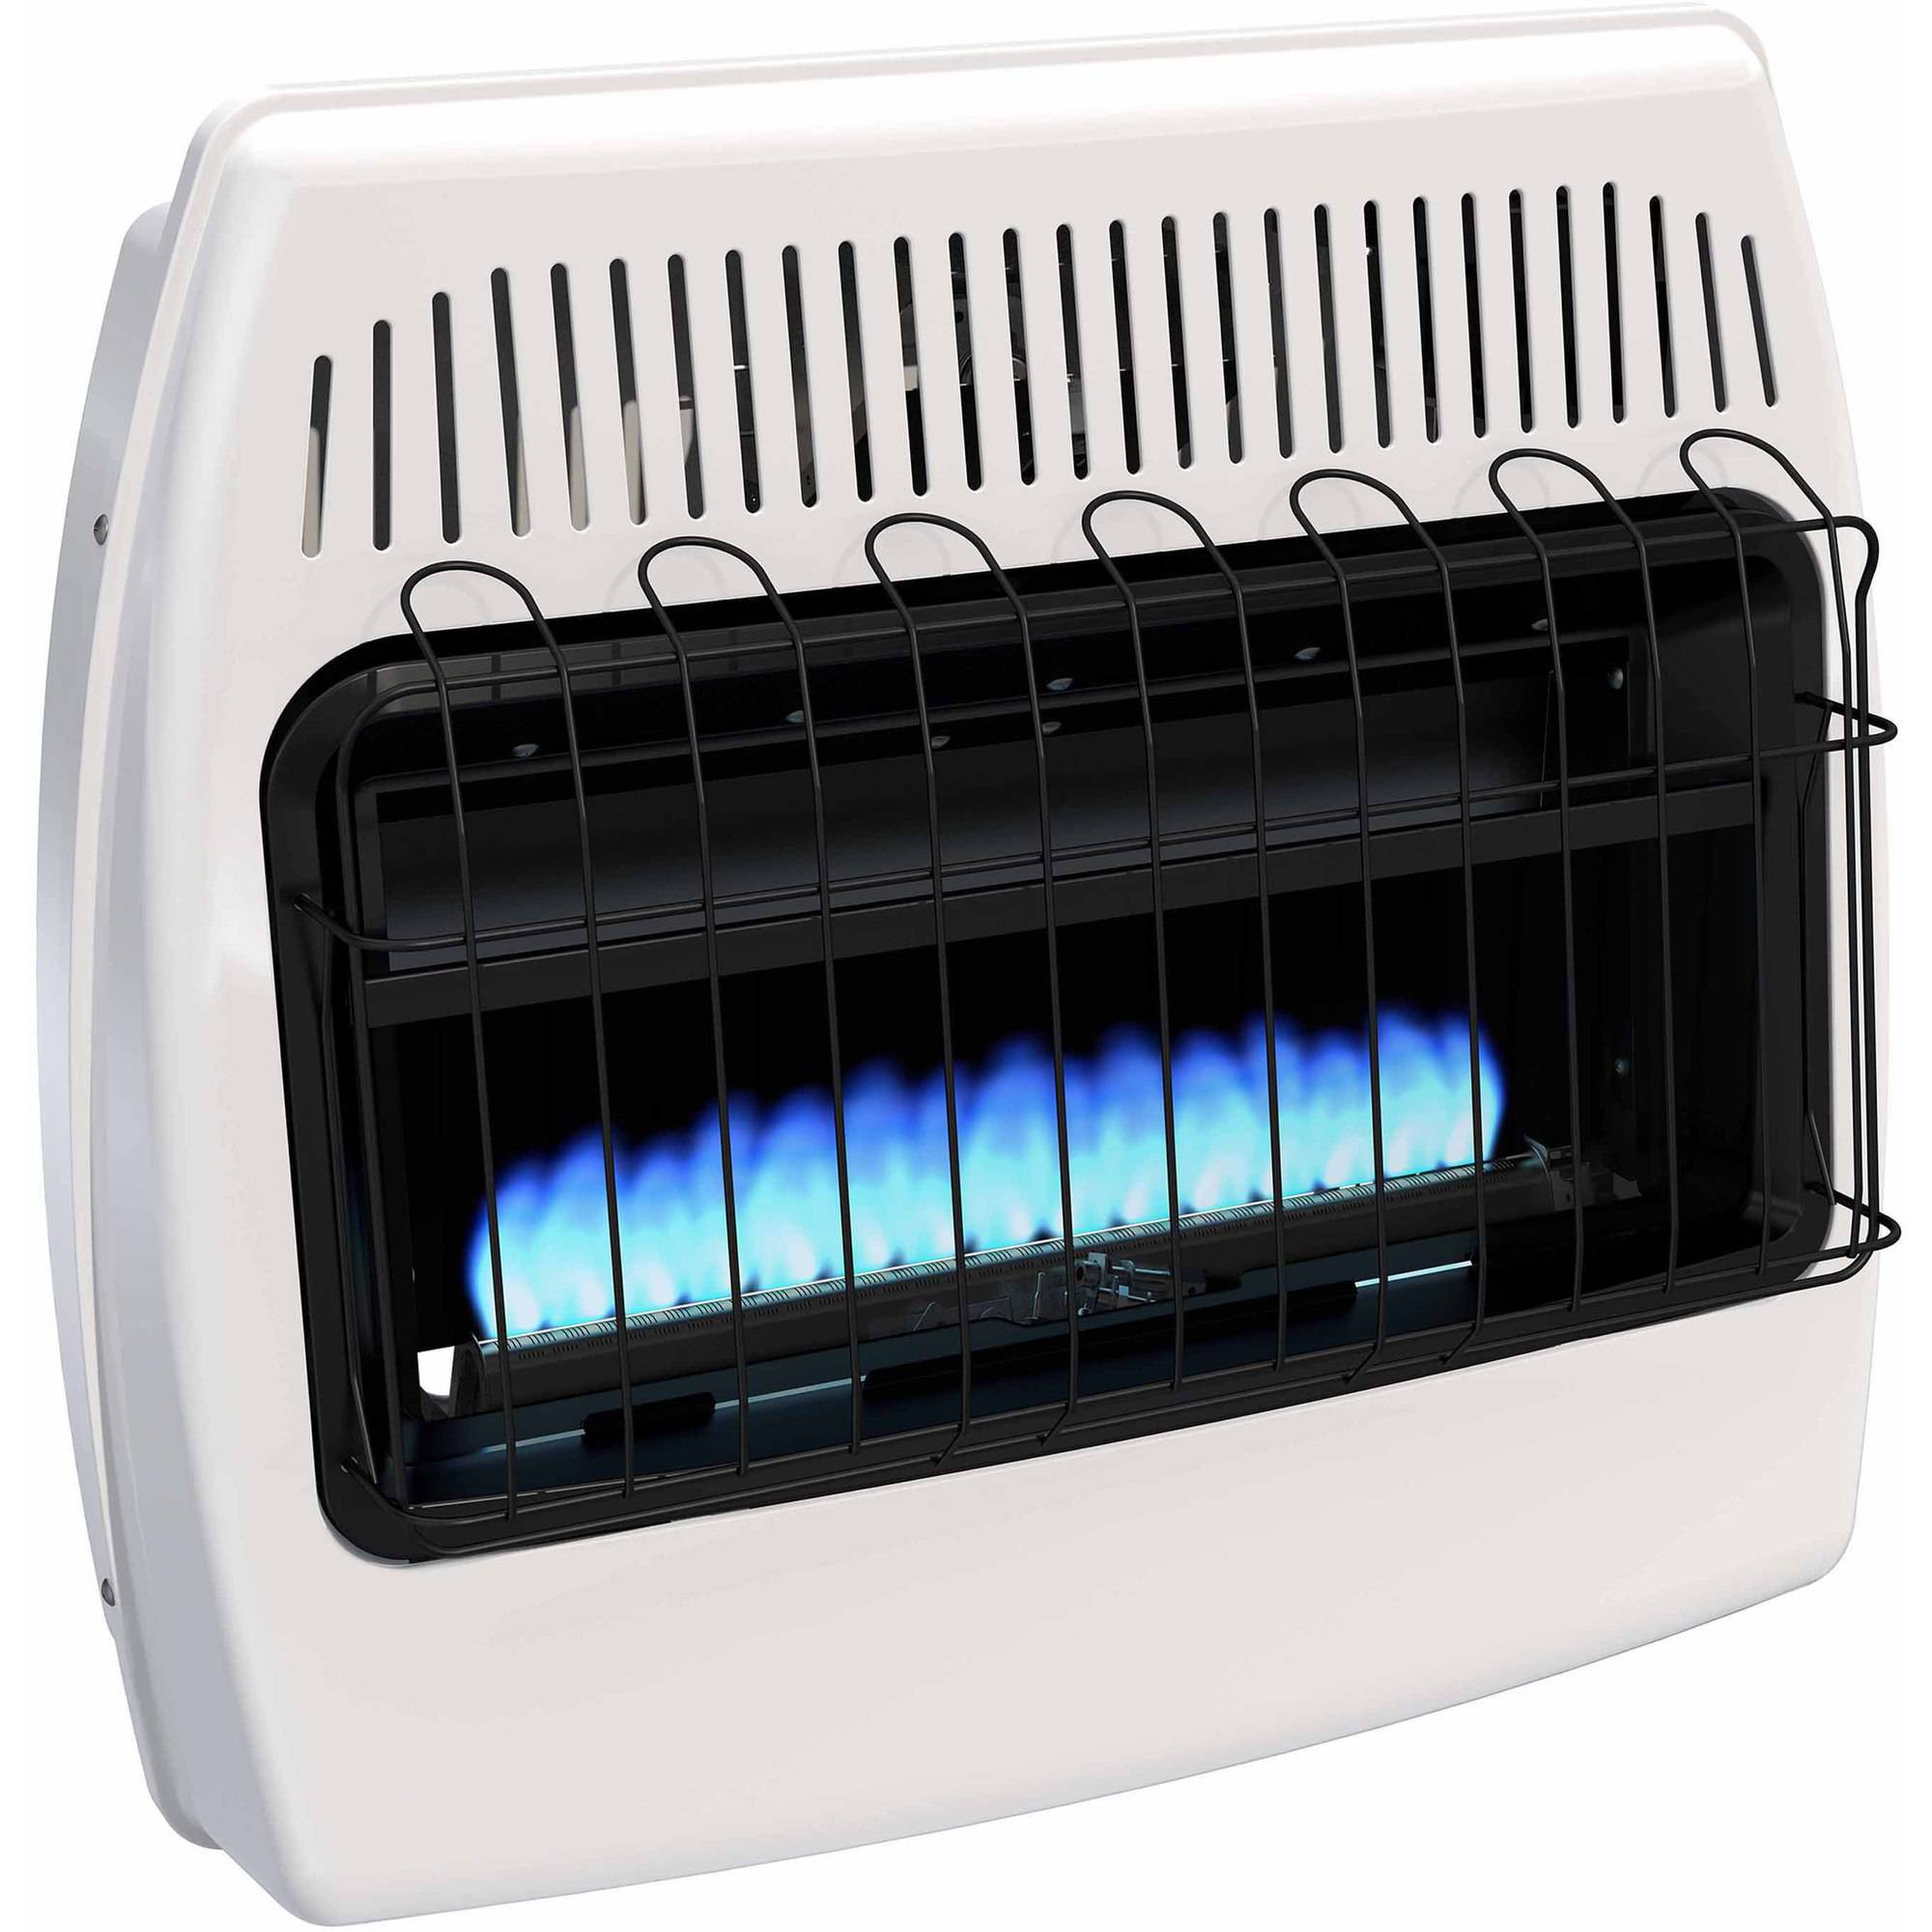 Dyna-Glo BF30PMDG 30,000 BTU Blue Flame Propane Gas Vent Free Wall Heater